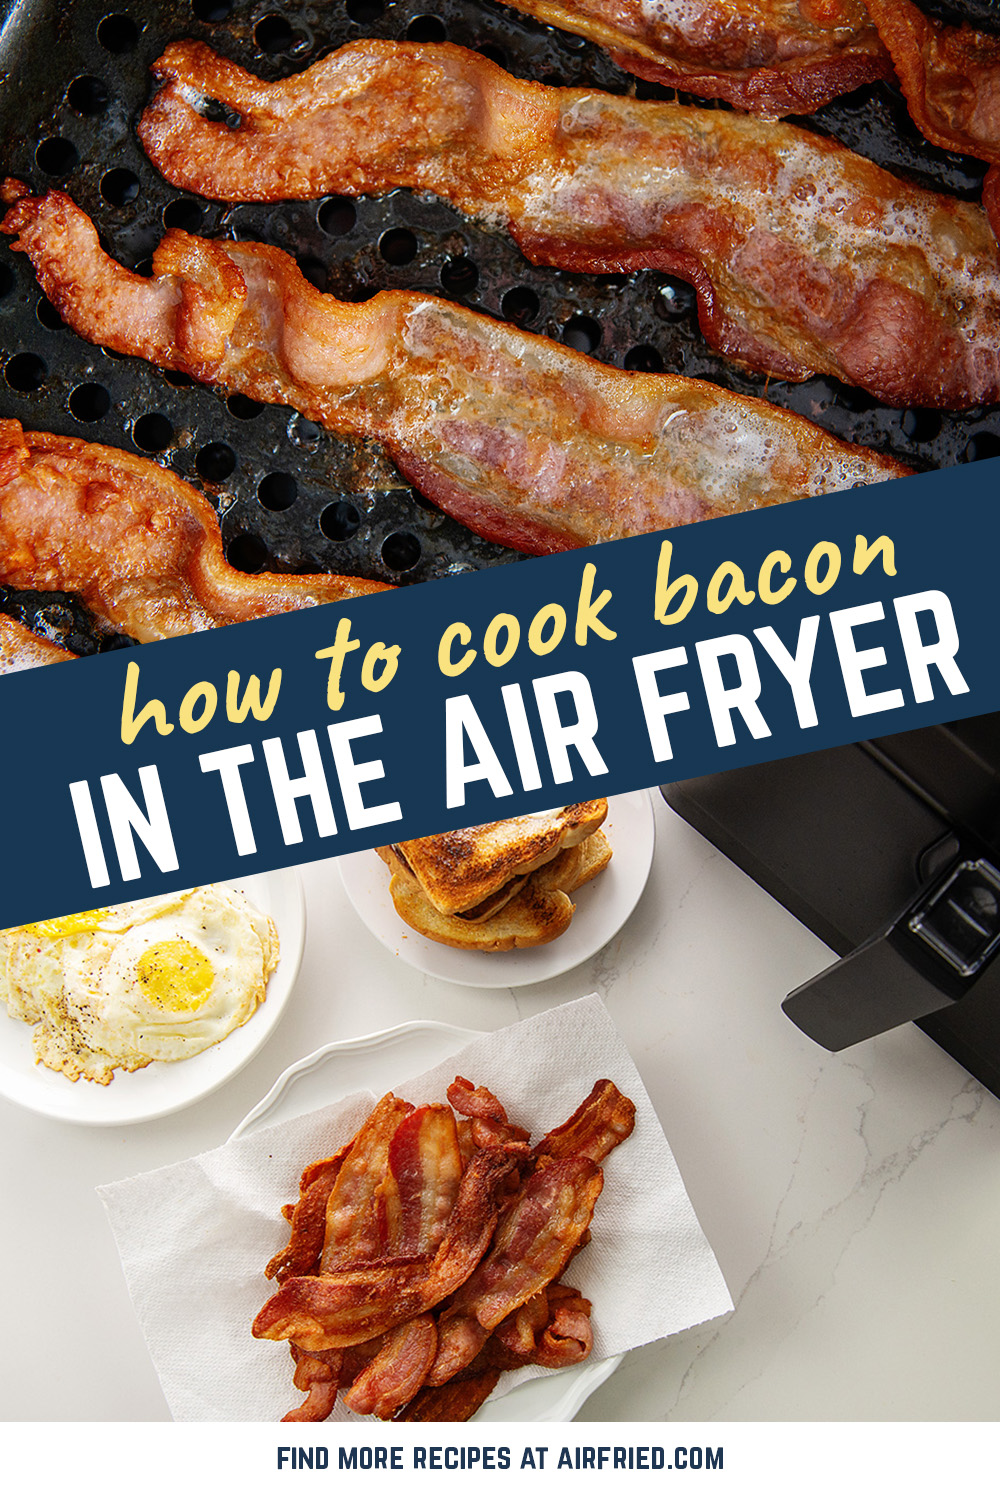 Breakfast in the air fryer! This air fried bacon is so much easier than frying and you don't have to worry about grease popping everywhere.